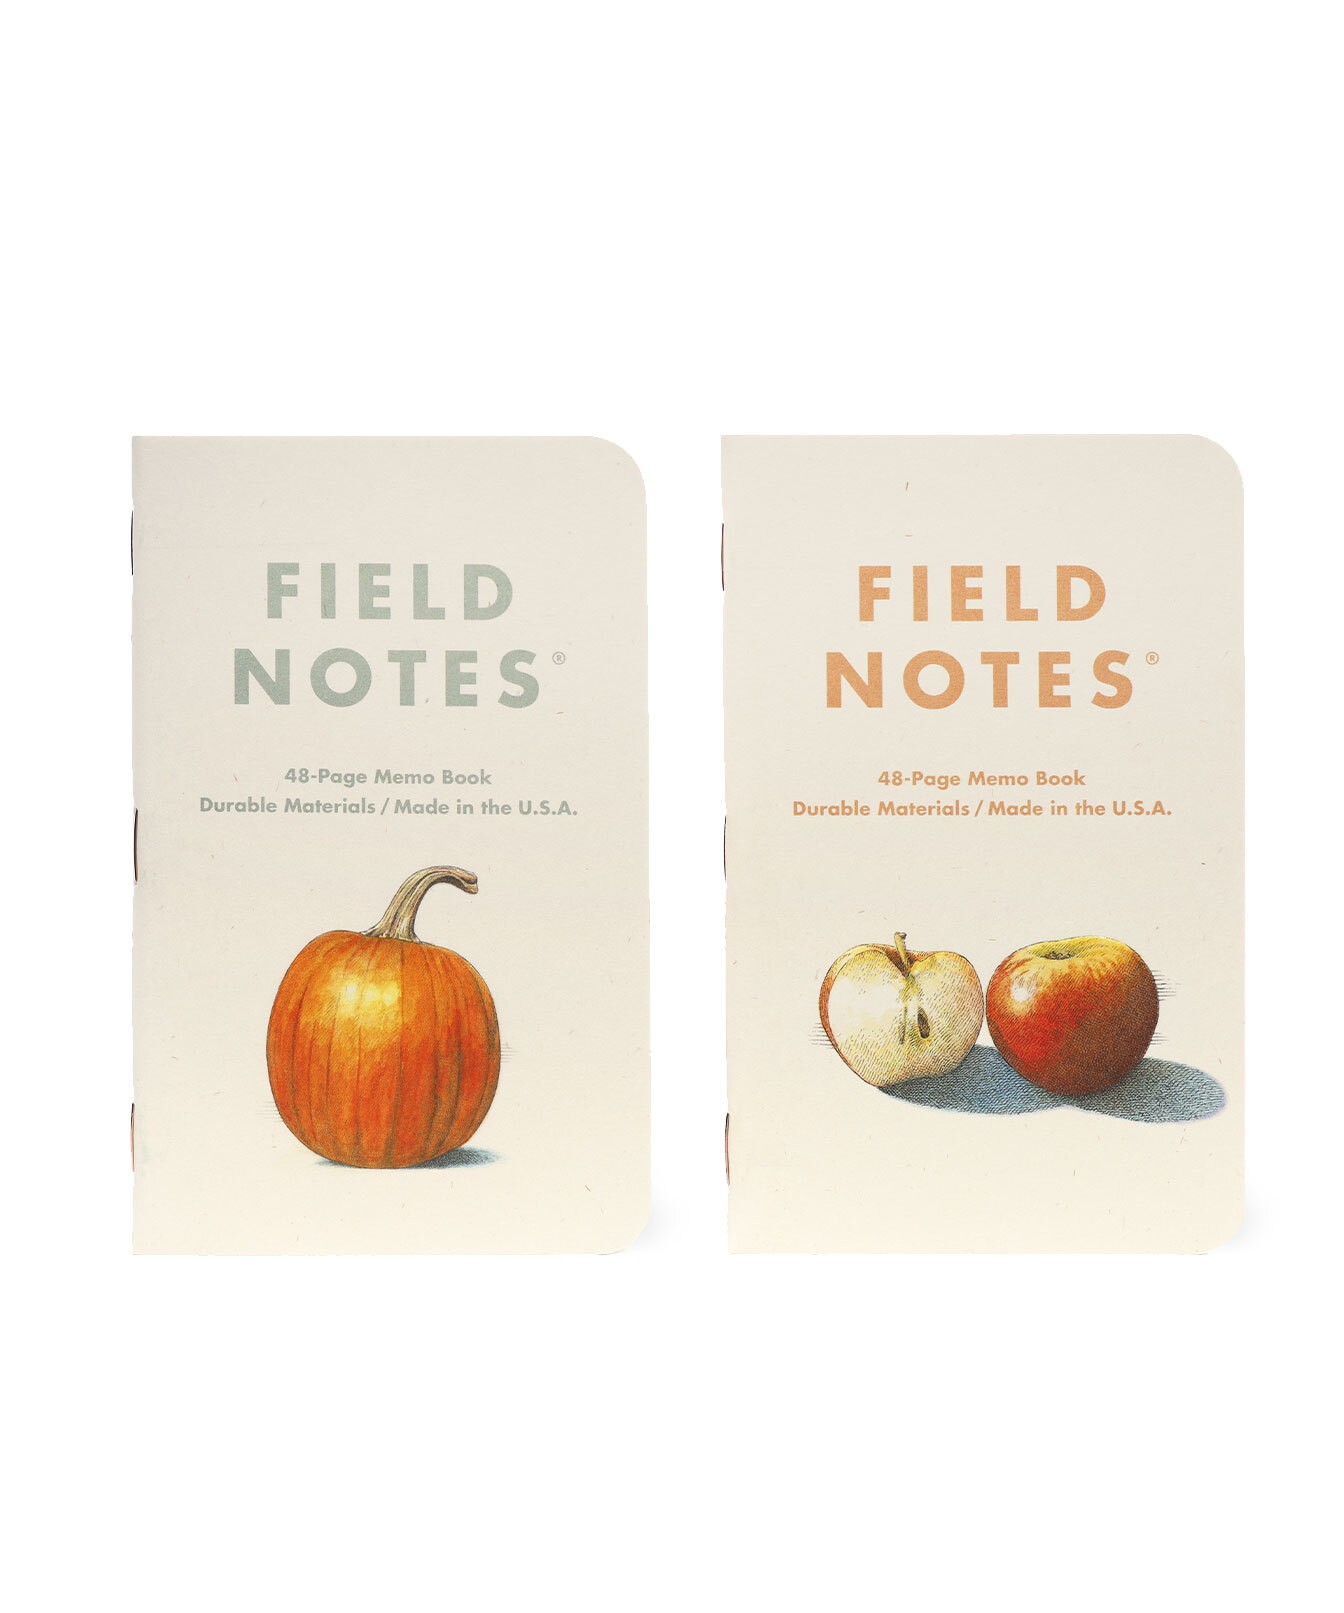 Field Notes Quarterly Limited Edition Fall 2021 Harvest Perforated Ruled Dot Ledger